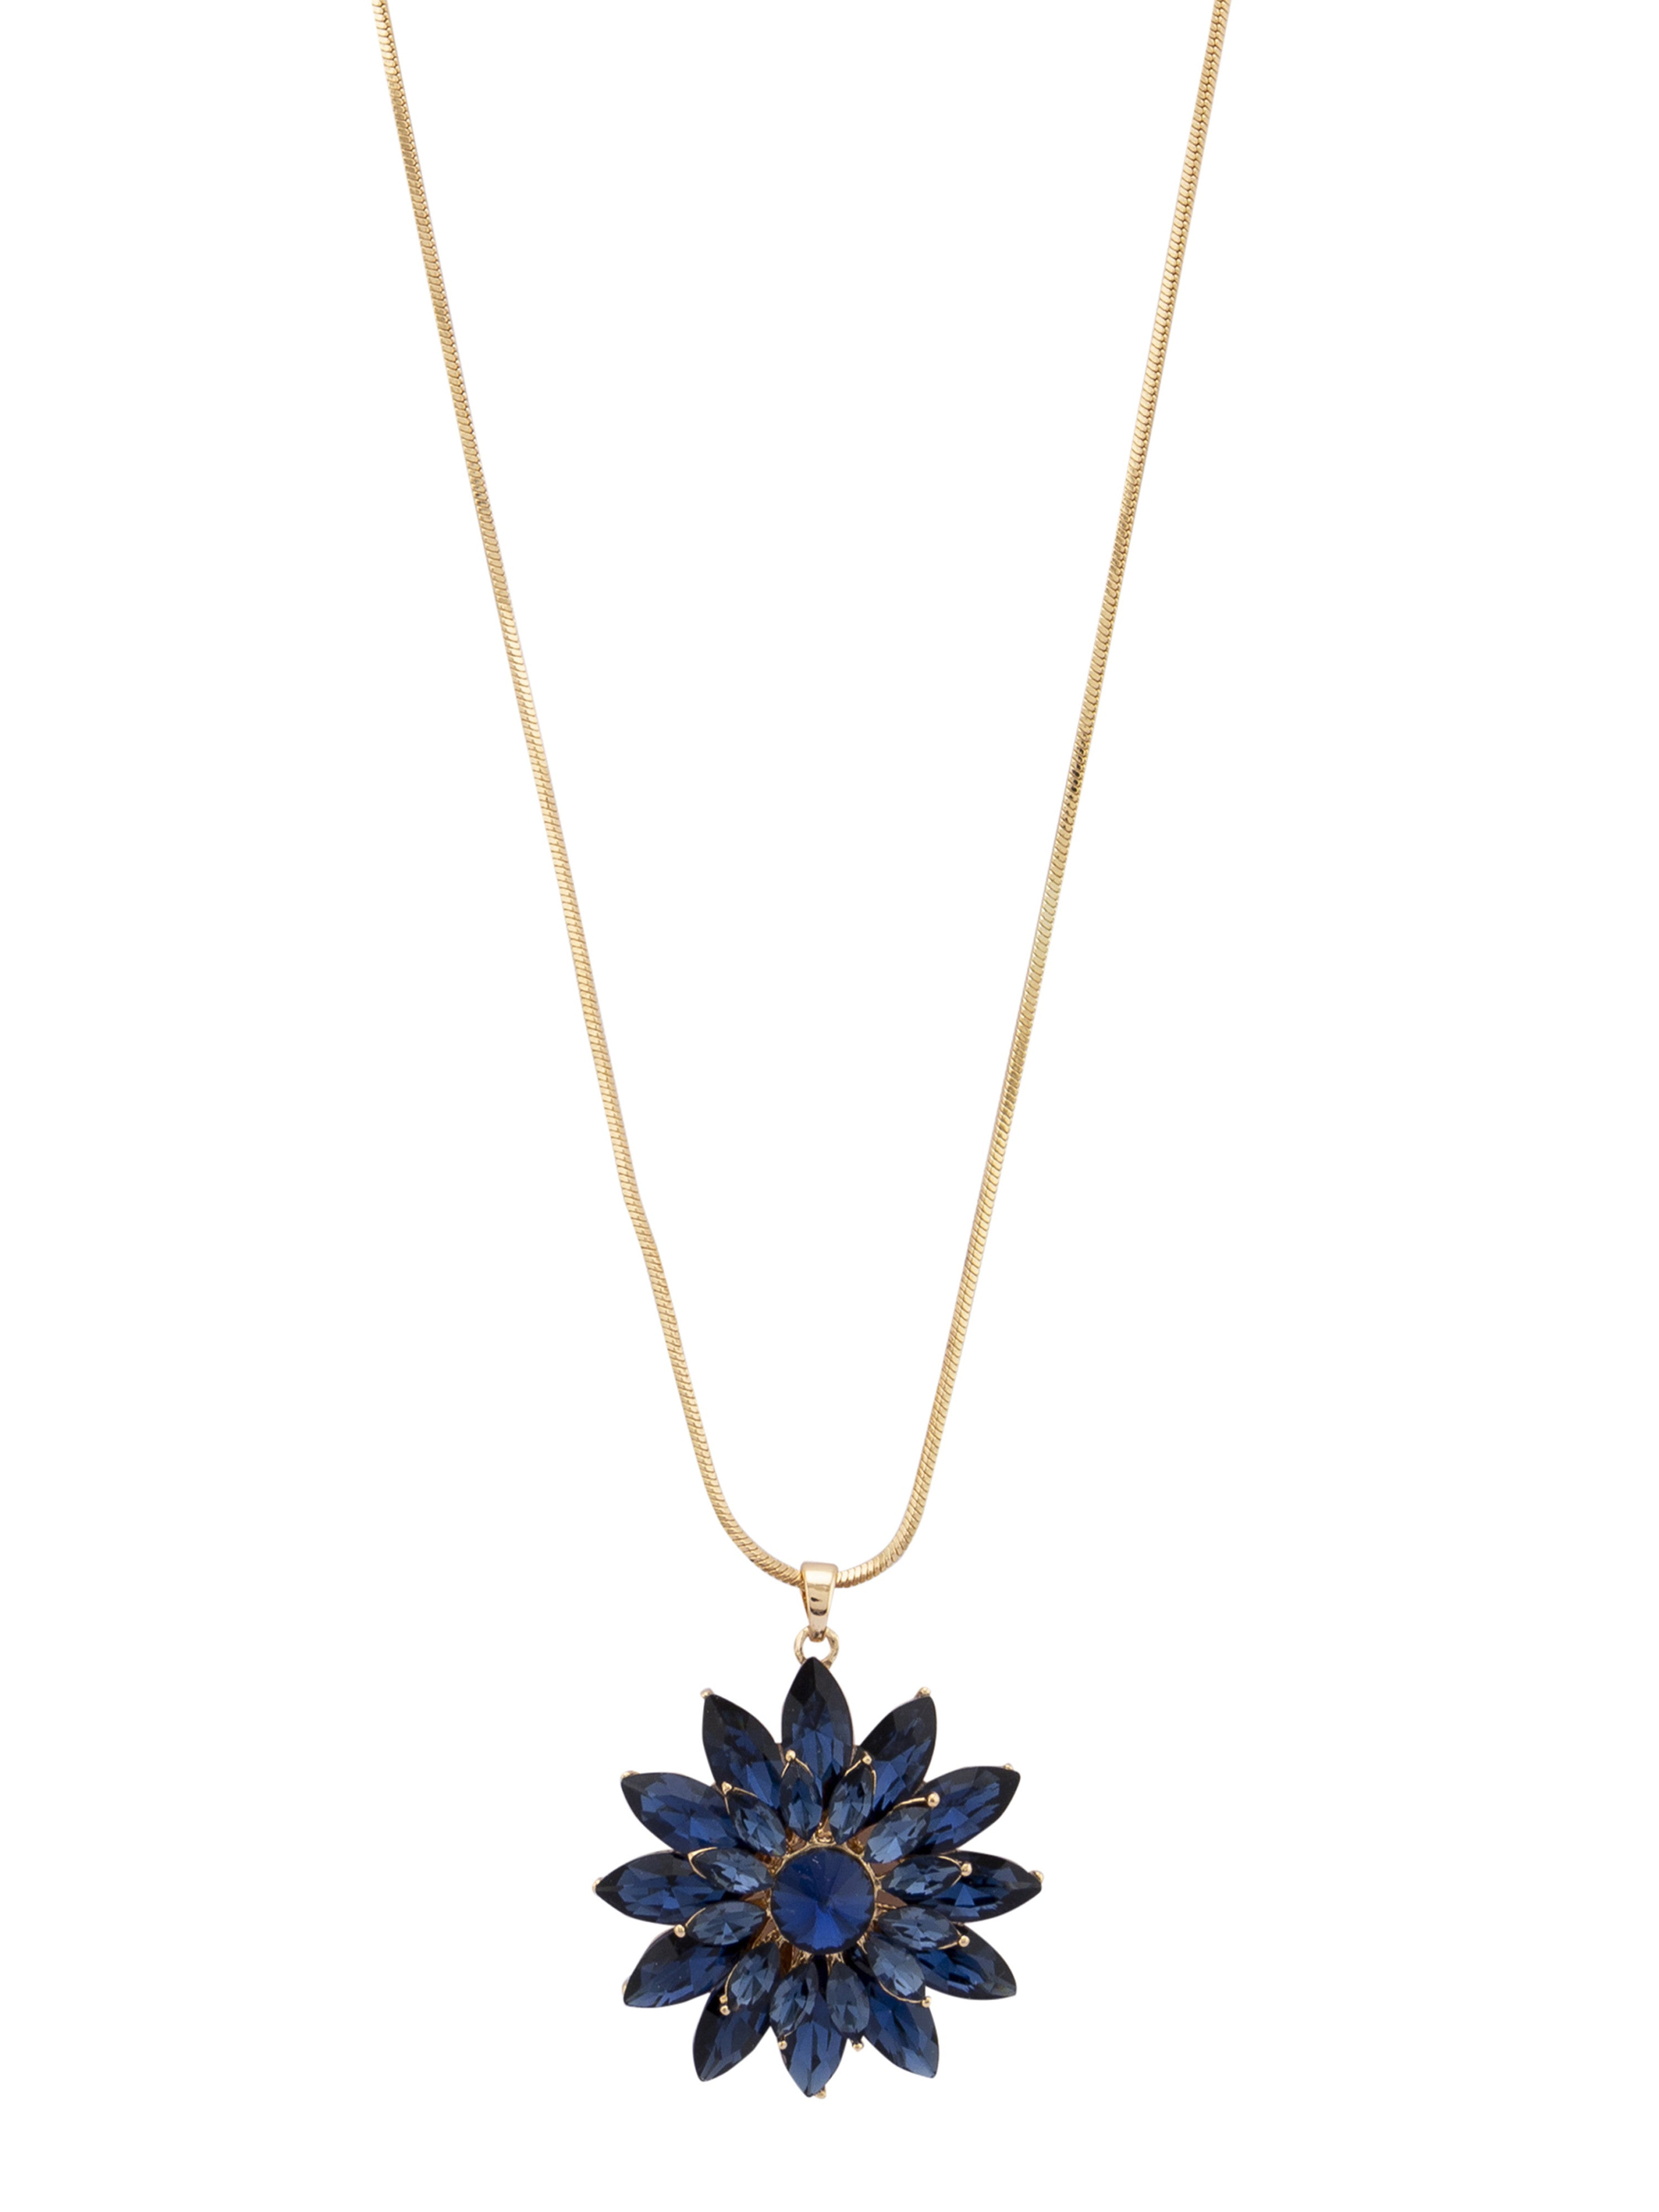 Floral Pendant Navy Gold Necklace-2